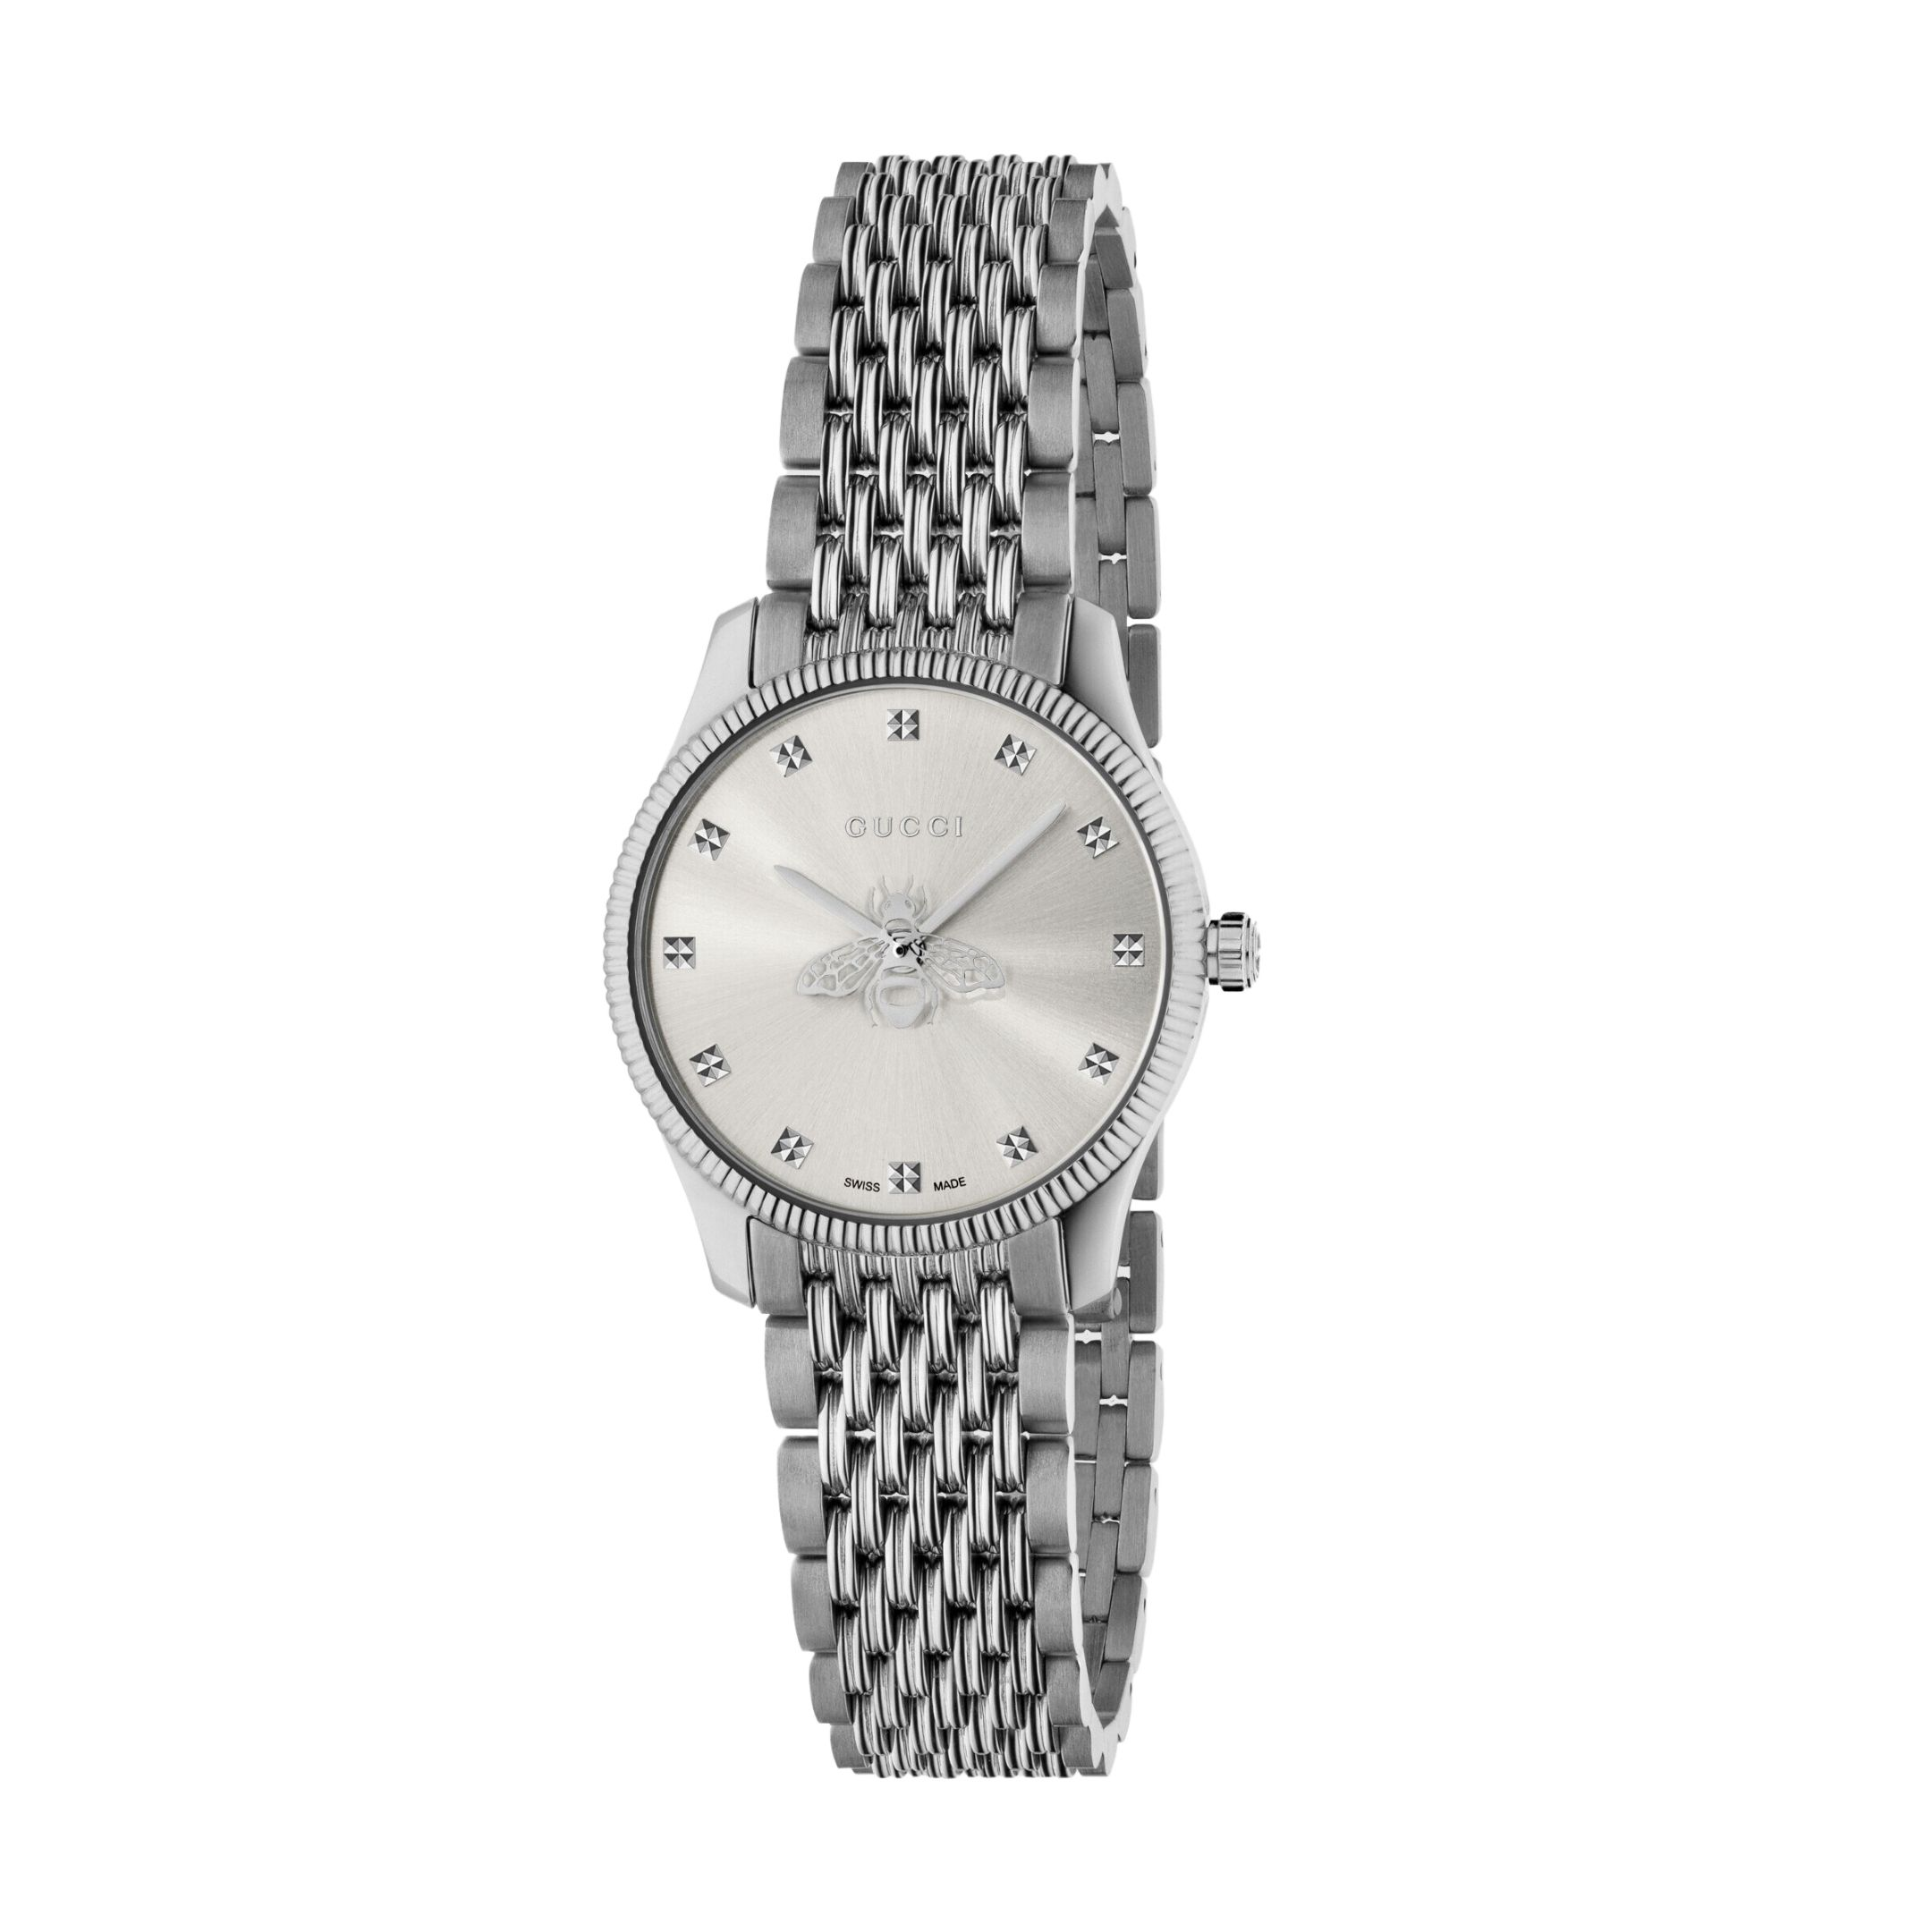 GUCCI Orologio G-Timeless gucci 29 mm watch timepiece sconto discount